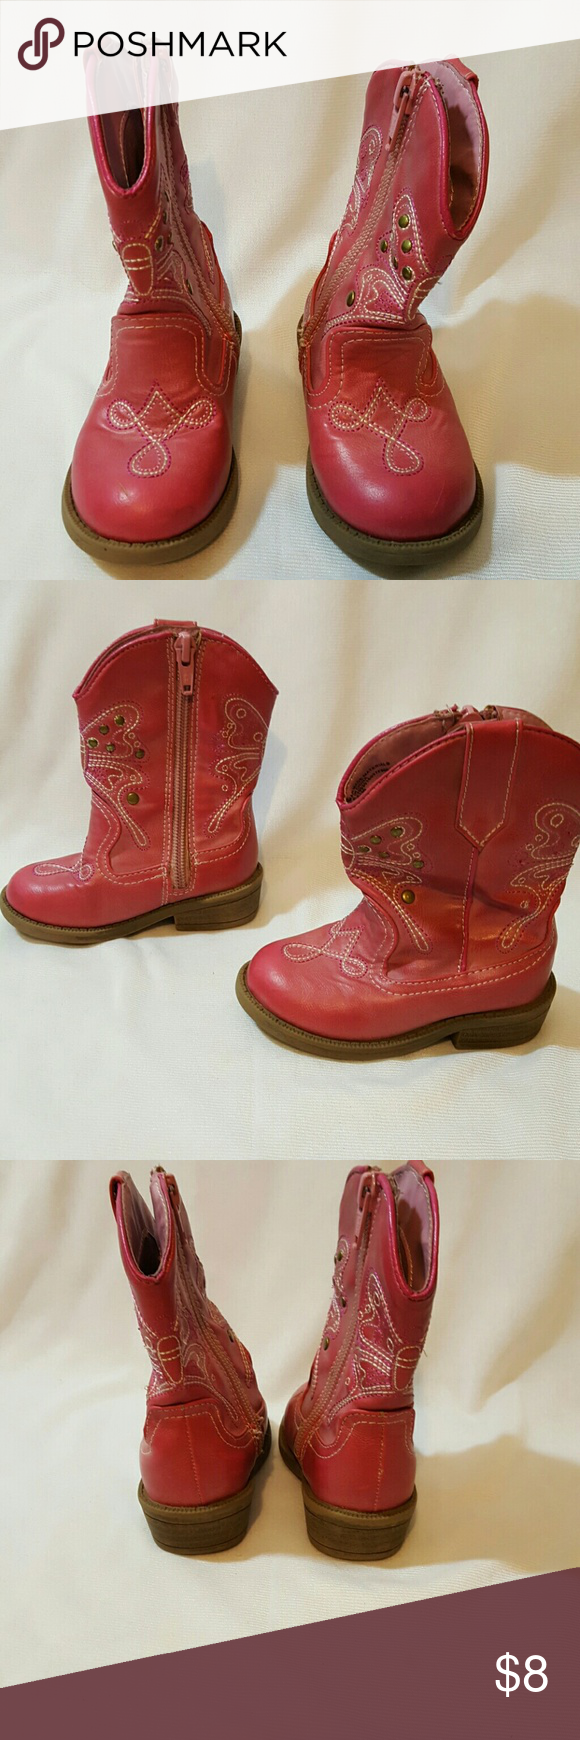 Cherokee Girls Toddler Cowgirl Cowboy Boots Size 5 Size 5  Pink Good condition Cherokee Shoes Boots